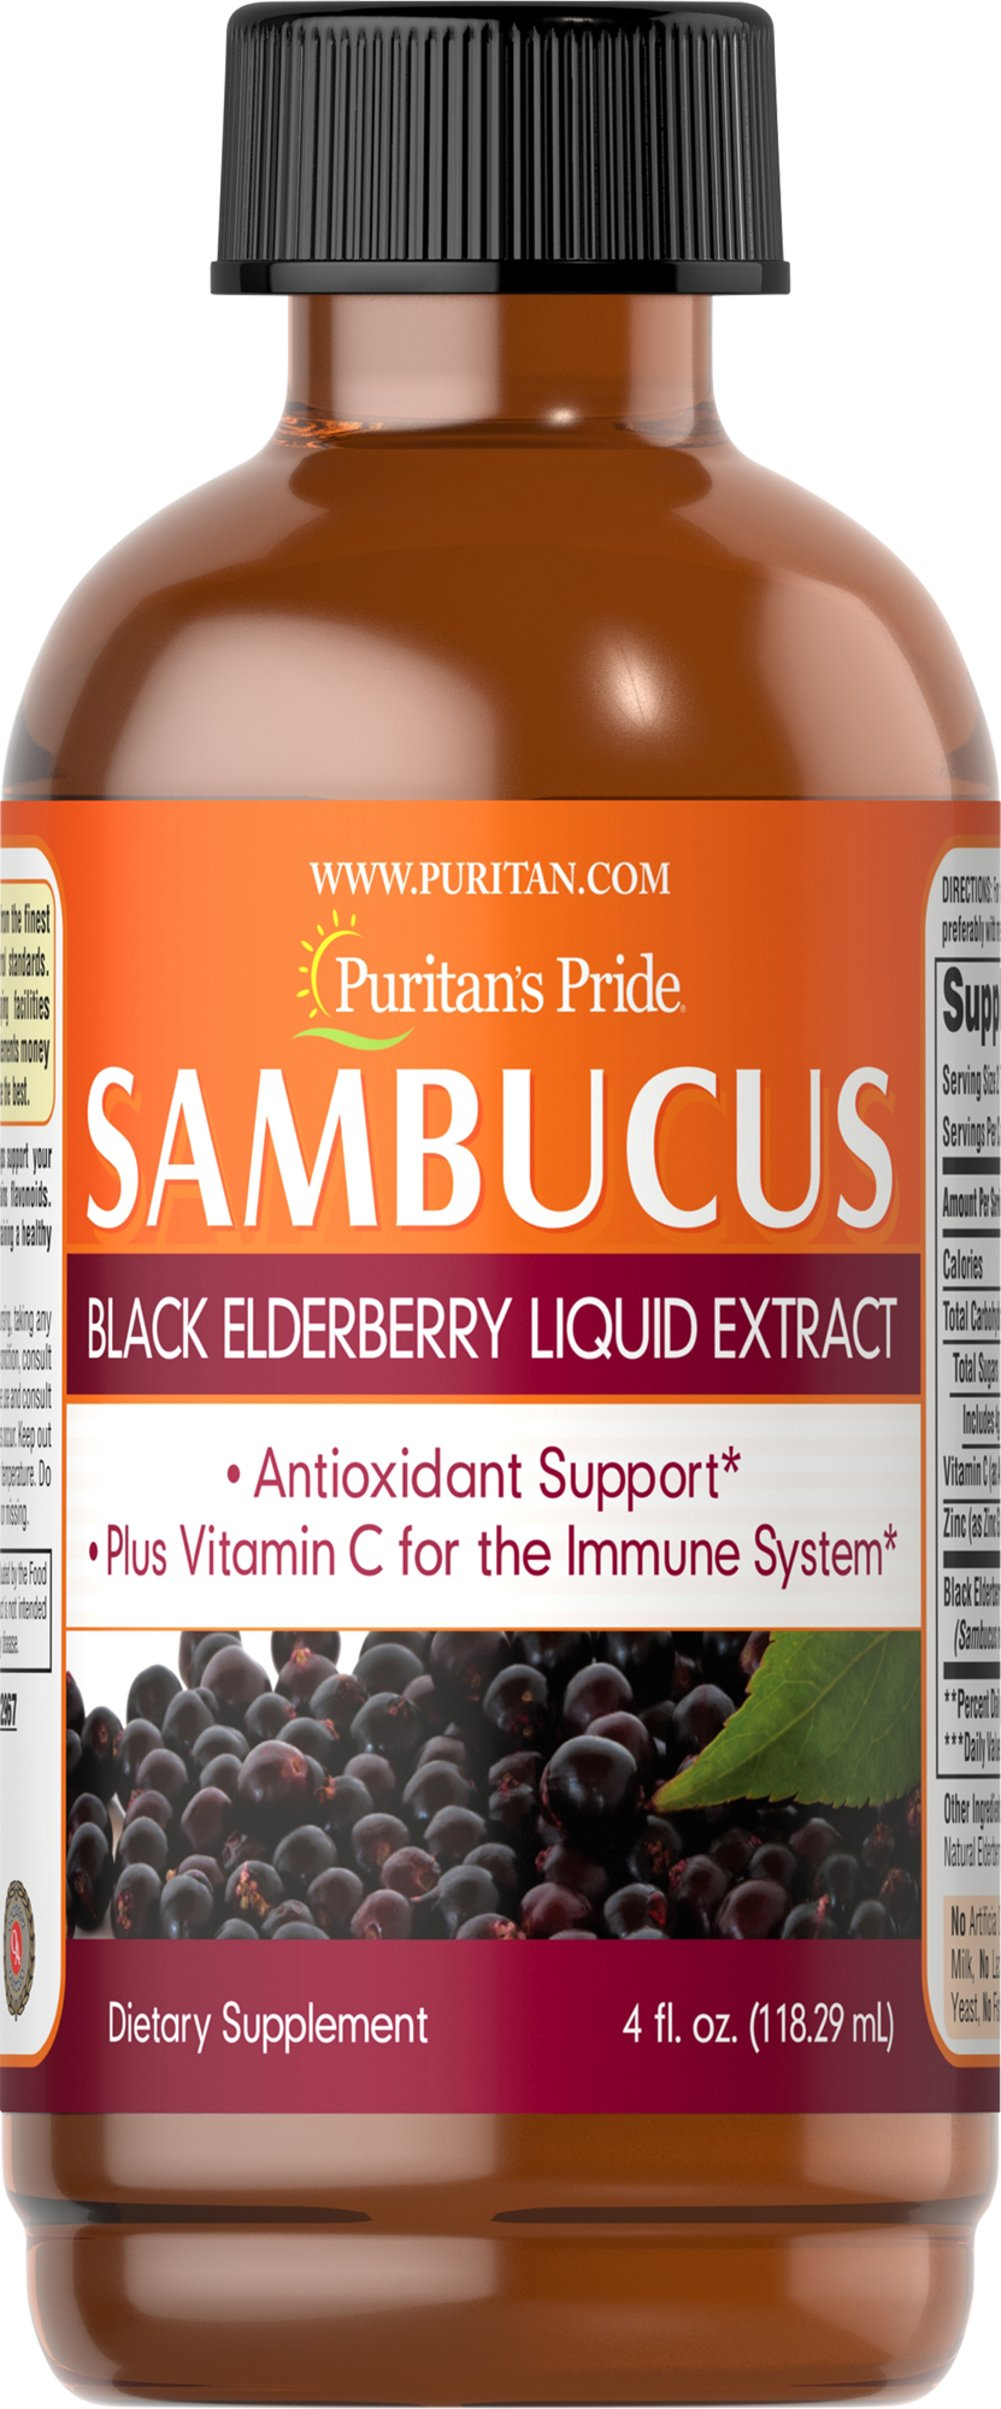 Sambucus Black Elderberry Liquid Extract <p>Antioxidant Support**</p><p>Plus vitamin C for the Immune System**</p><p>Taken every day, Sambucus helps support your overall health and wellness.**  Elderberry contains flavonoids for antioxidant support.**  Vitamin C and Zinc play an important role in maintaining a healthy immune system.**</p> 4 oz Liquid